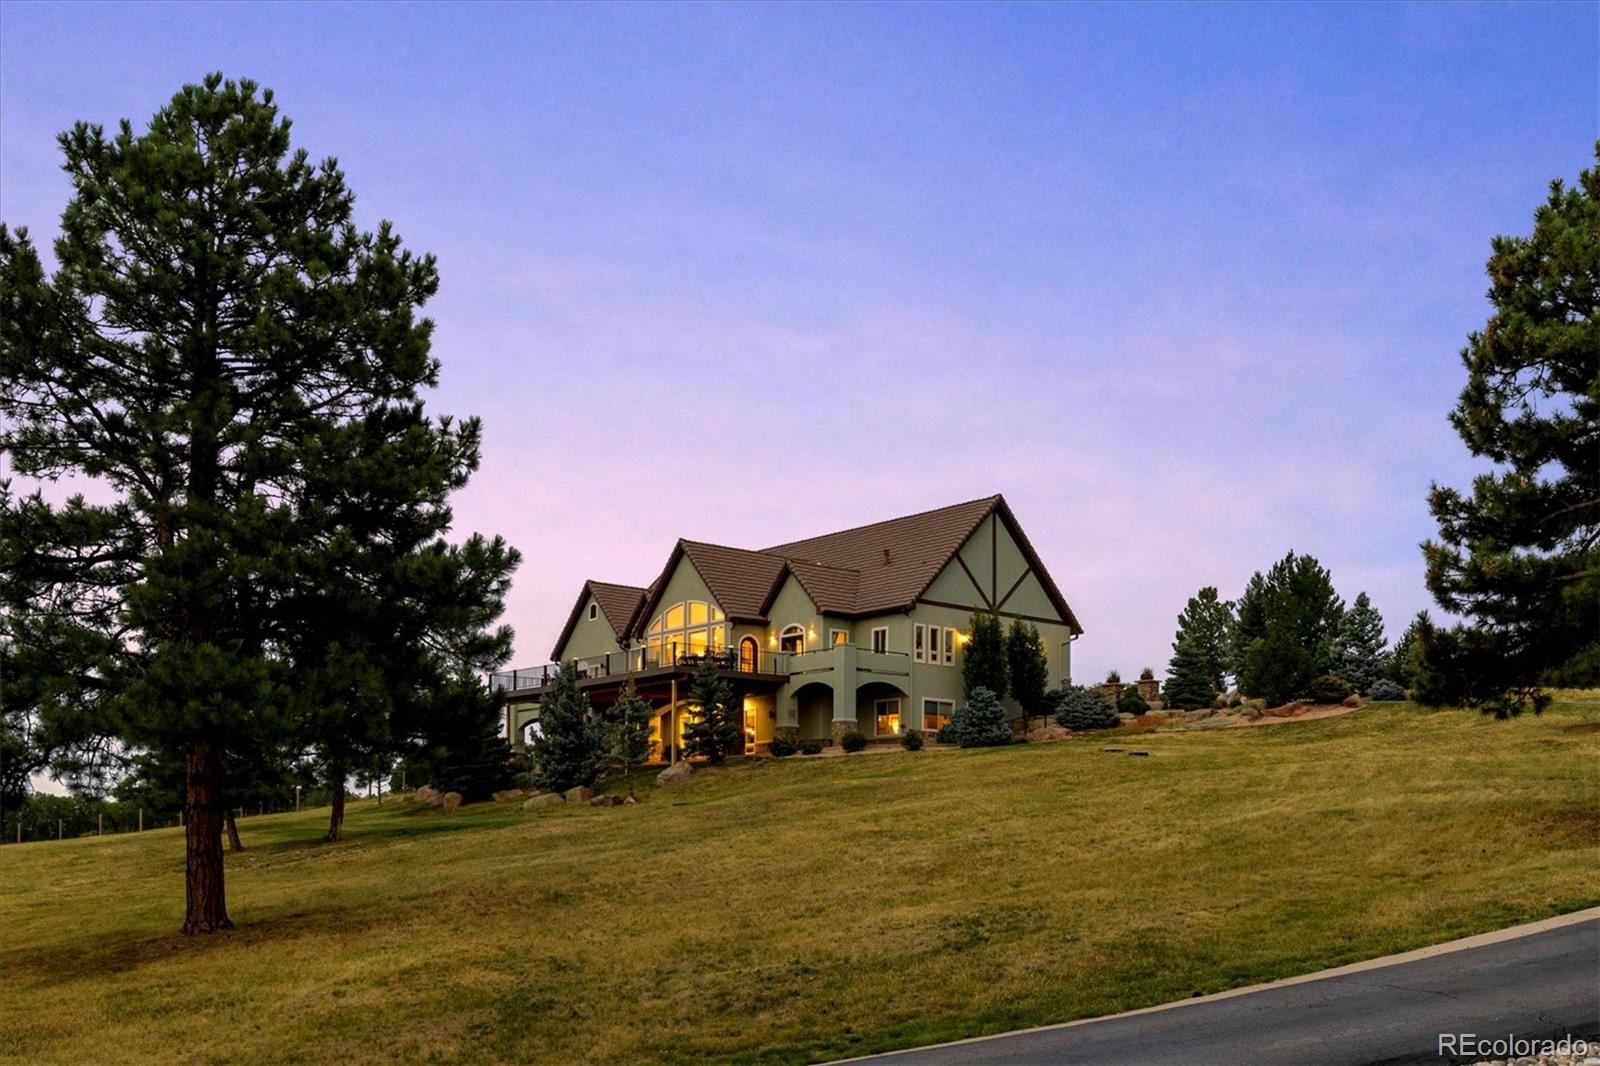 Mountain Living & Luxury at its FINEST! This Hilltop, Gated, Sedalia Home welcomes you to the SHINING STAR of the neighborhood.   3280 Park Ridge Road boasts an 8.86 acre lot, breathtaking views, colorful sunsets, and beautiful wildlife; providing mountain living at its finest in this exceptional, custom-built home. Upon entry, you will be instantly captivated by the hand crafted doors, floor to ceiling windows, dramatic views, massive stone fireplace and gleaming hardwood floors.  Top-of-the-Line Custom Finishes Throughout, Custom Cabinetry, Gourmet Kitchen with Sub Zero & Wolf Appliances, Walk-In Pantry, Granite Counters make the Open Floor Plan Perfectly Designed for Gatherings.  The Main Floor Master Suite features private access to the 1500 Sq Ft Deck, Fireplace, Large Master Bath with His/Her Vanities and Closets, and Private Study/Den with its own separate entrance.  The main floor of the home also features an additional bedroom with ensuite bath, powder bath and large laundry & mudroom.  The finished walk-out basement adds 2 additional large bedrooms, each with walk-in closets and ensuite baths, exercise room and tons of storage.  The large lower level rec room has plenty of space to entertain or relax at home complete with a full kitchen/bar.  Don't miss the front covered patio and firepit, 1600 sq ft barn, the pasture, the sundial patio and the AMAZING Views from the entire property.  Fall in LOVE with this Once-in-a-Lifetime Home!